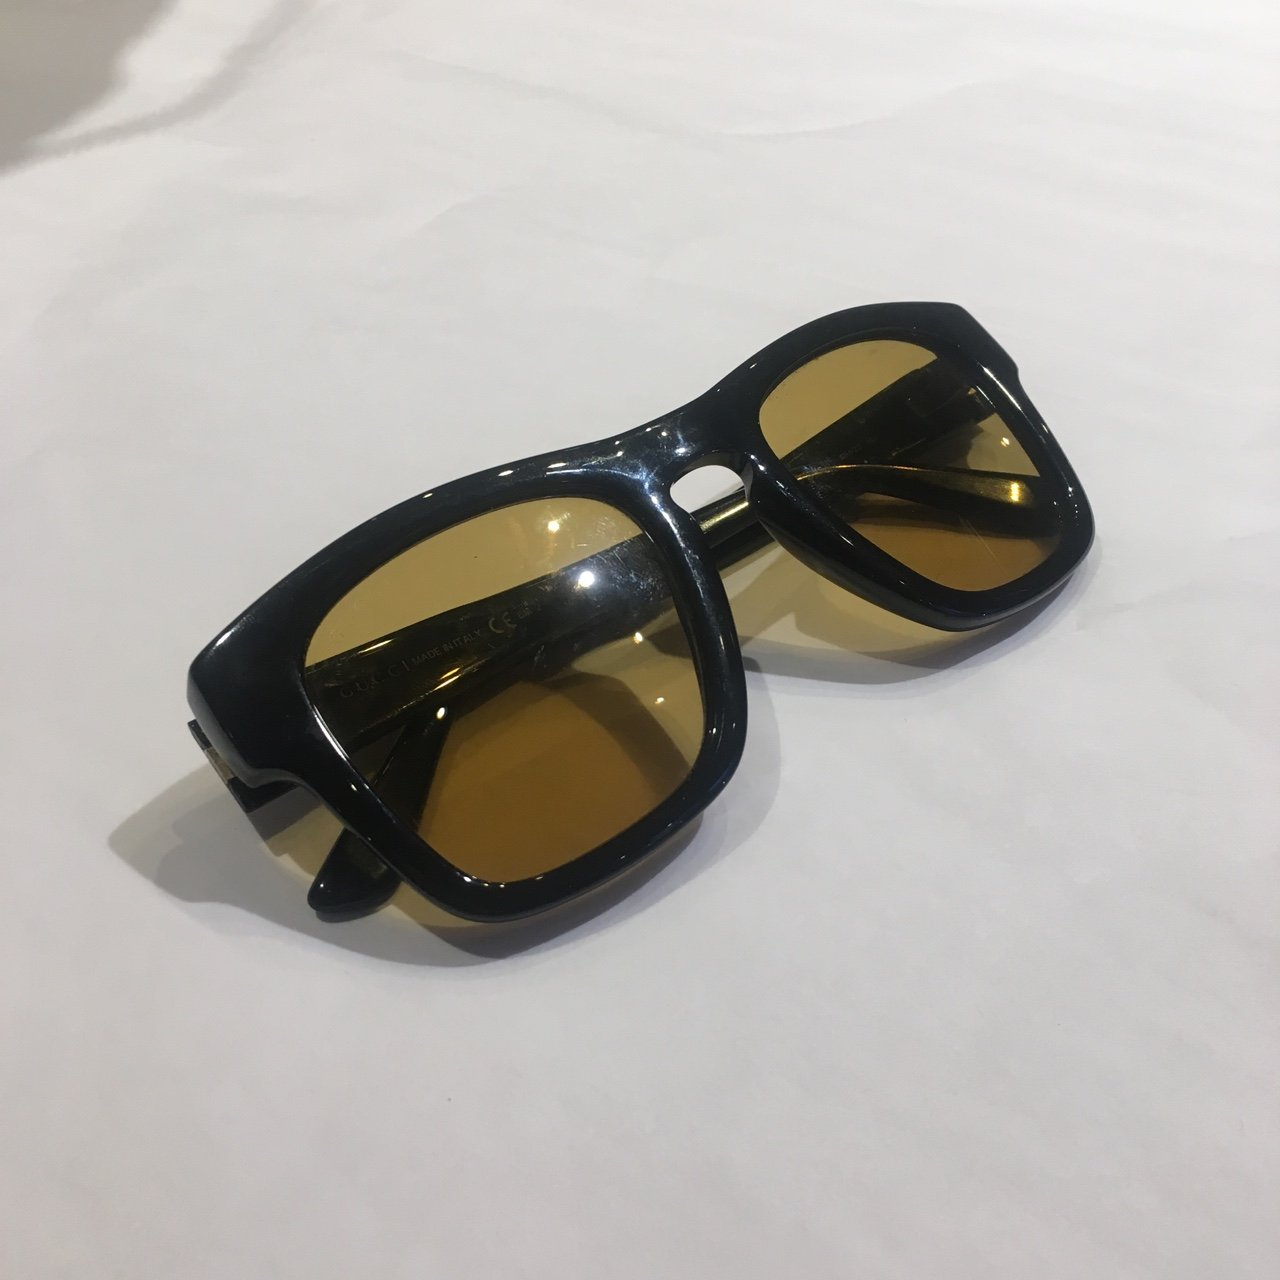 3759c839bfa GUCCI yellow tint sunglasses. Comes with Gucci logo case and - Depop